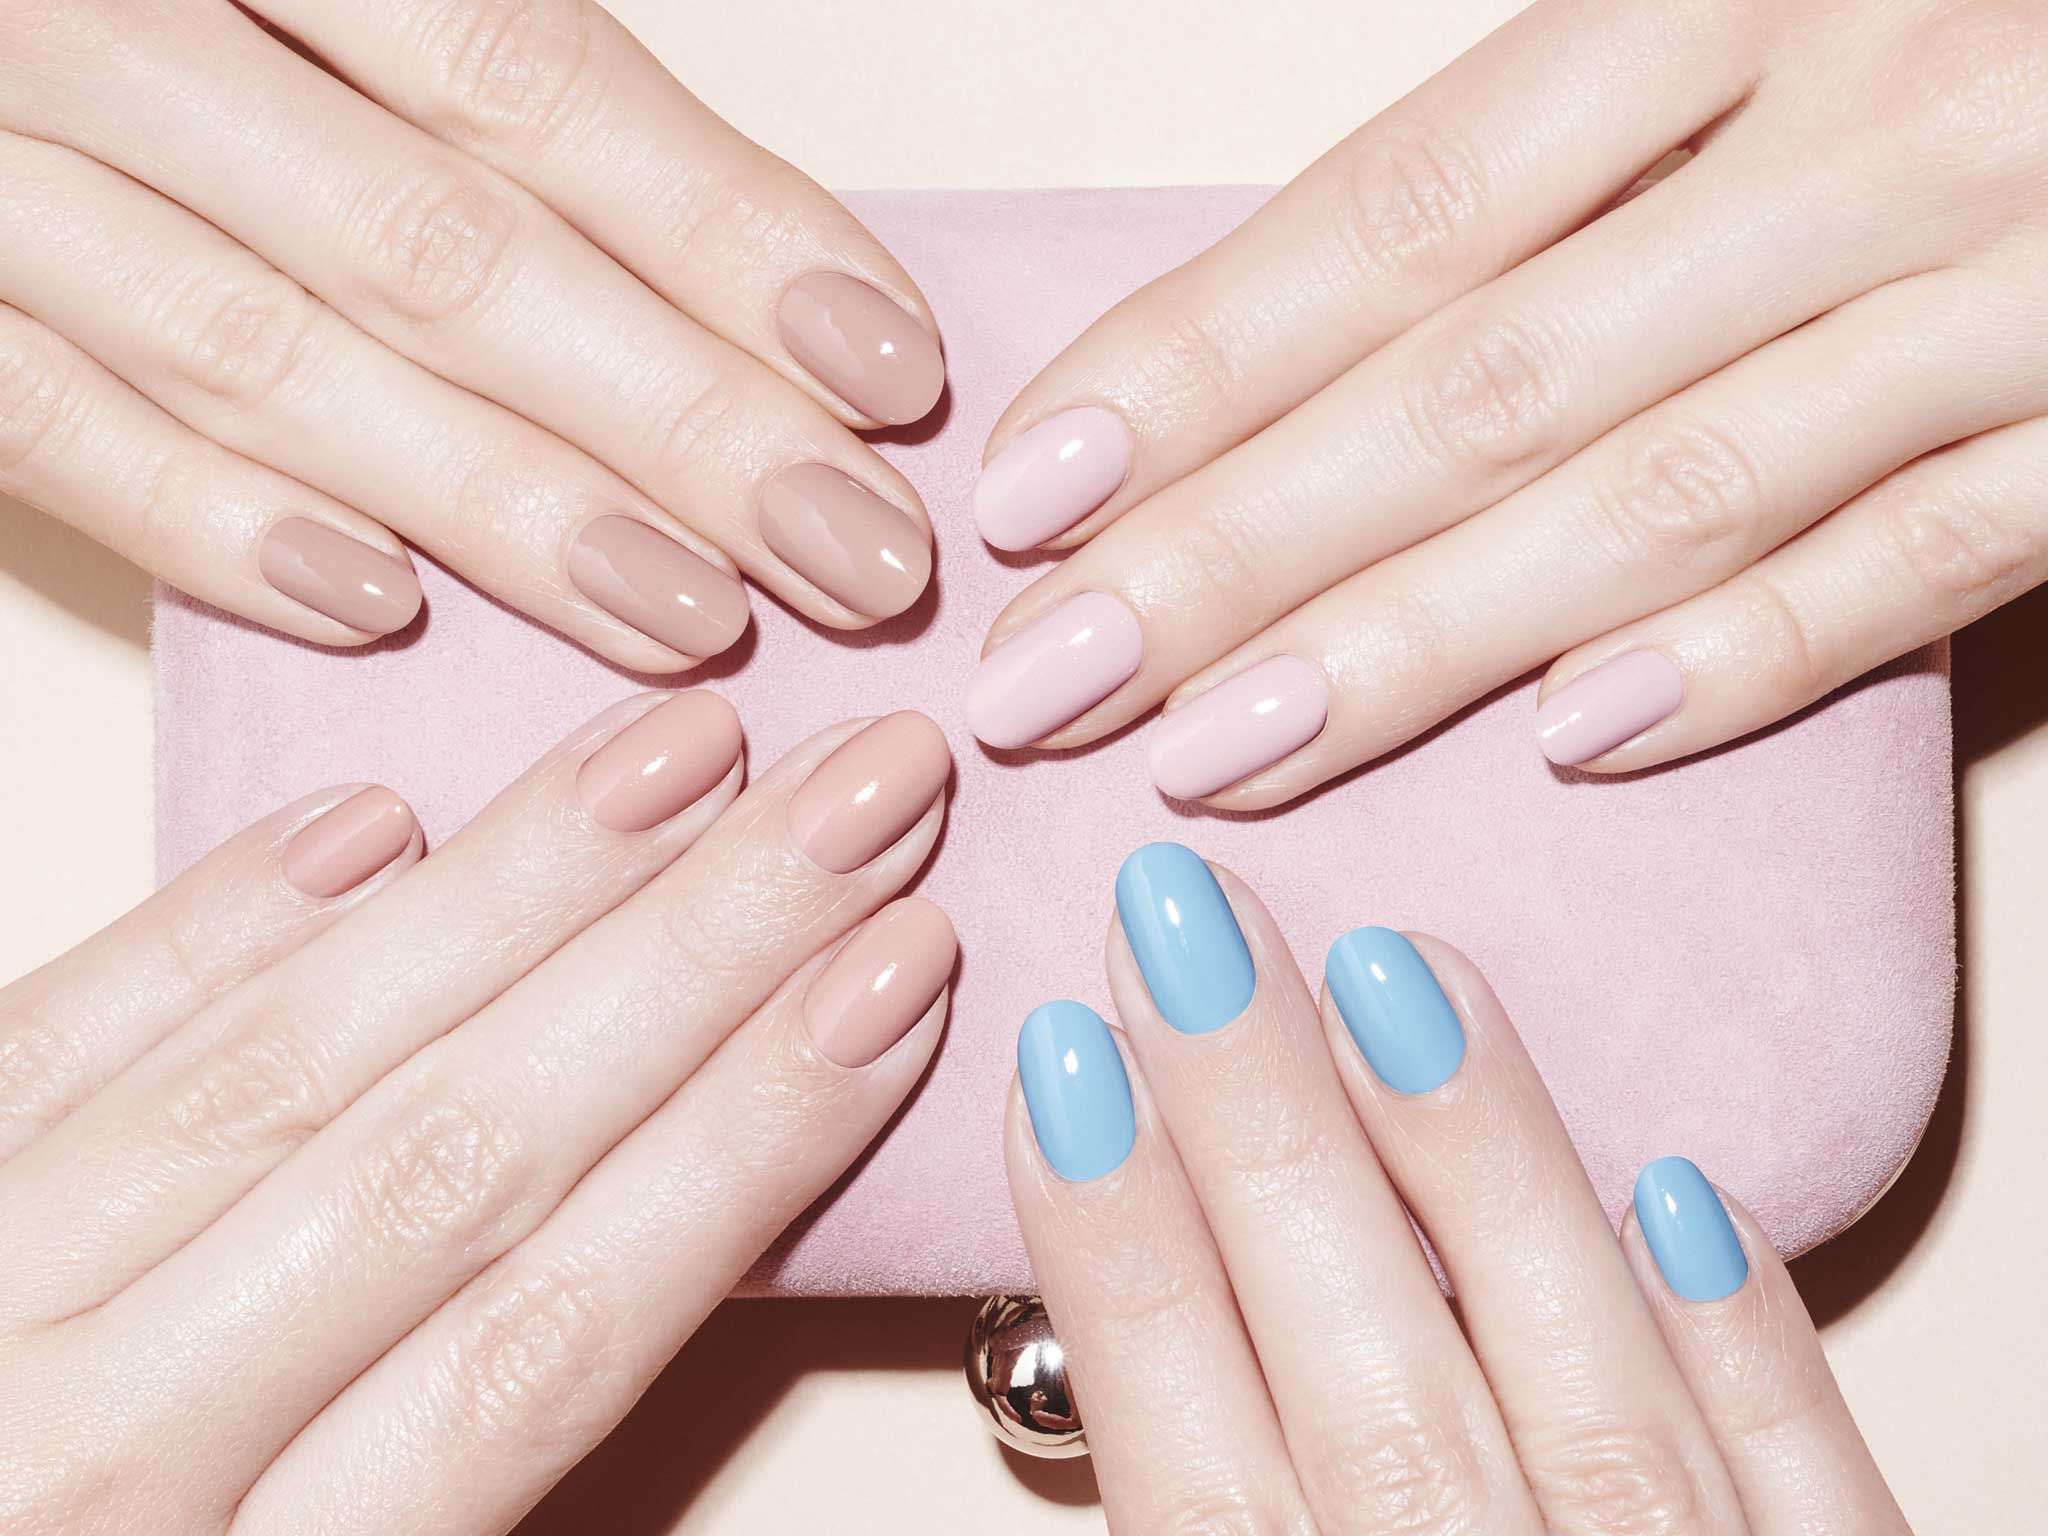 11 best nude nail polishes